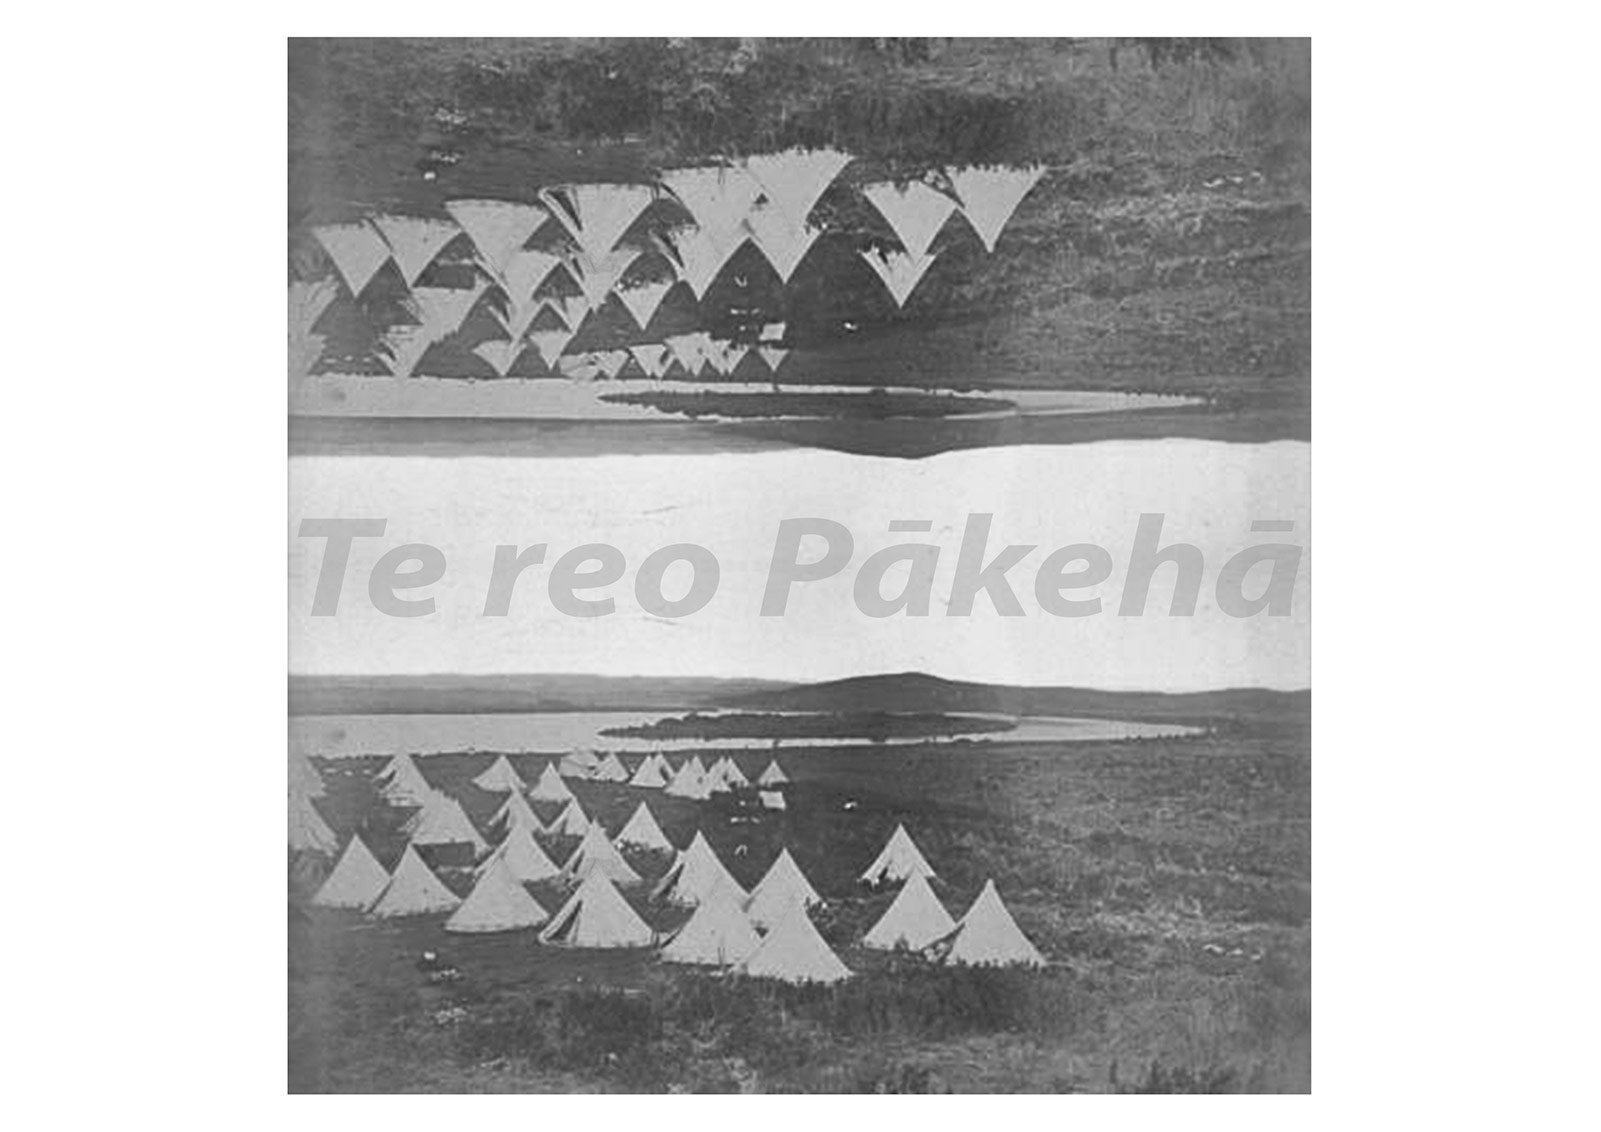 Te Reo Paakeha - reflected black and white image of white tents on grass